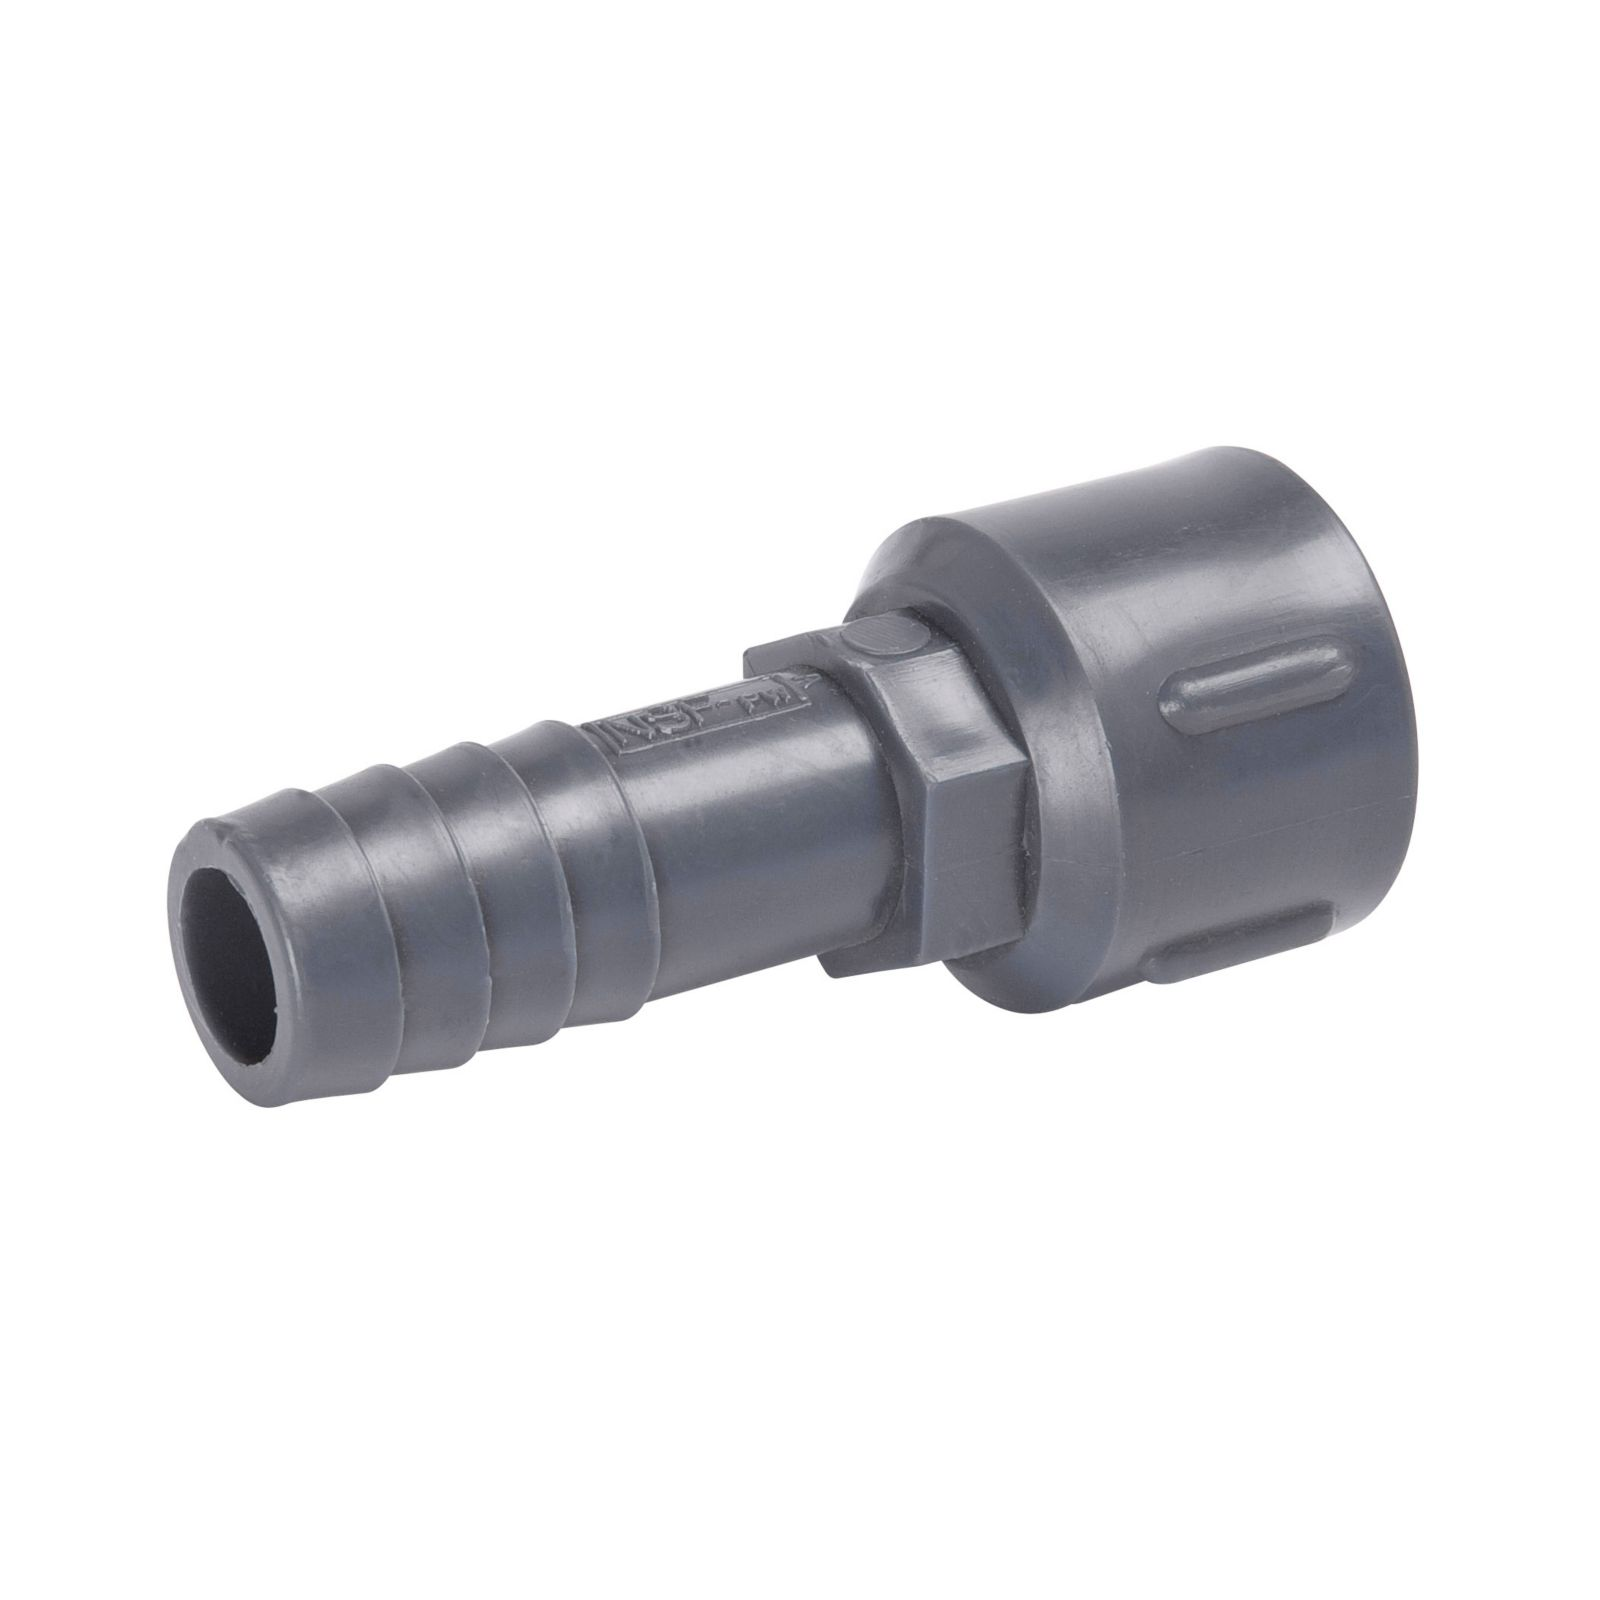 "Streamline 04785 - Adapter, PVC/Poly, 3/4""I.D. MIP x 3/4""I.D. MIPT"